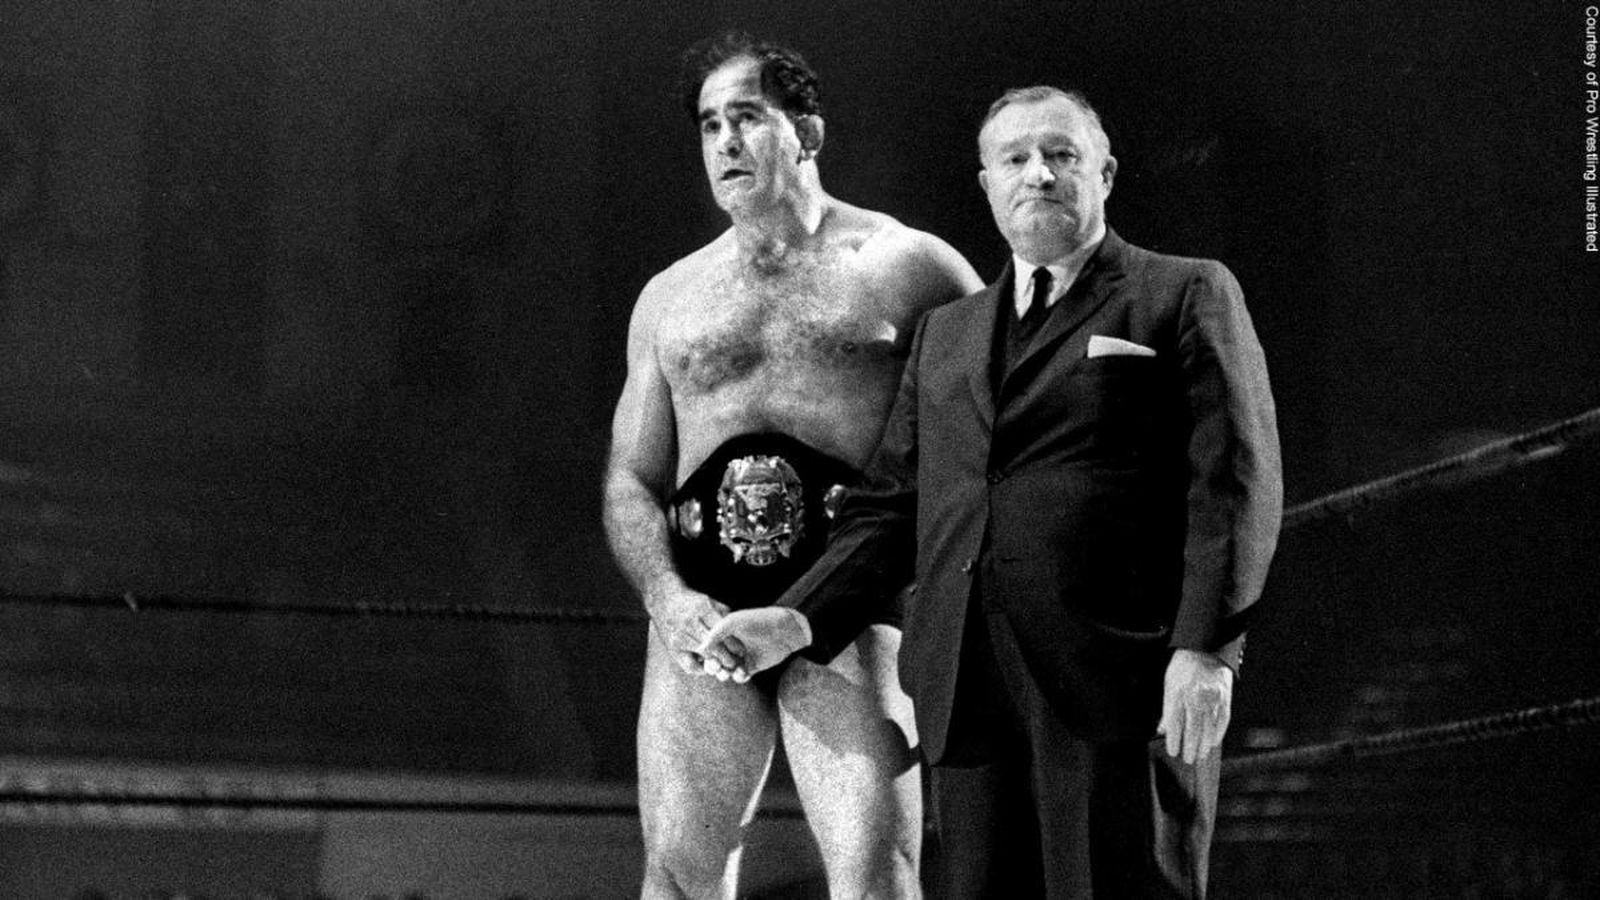 Pioneers Lou Thesz, Ed Lewis, Frank Gotch & more appear headed to WWE Hall of Fame (sort of)